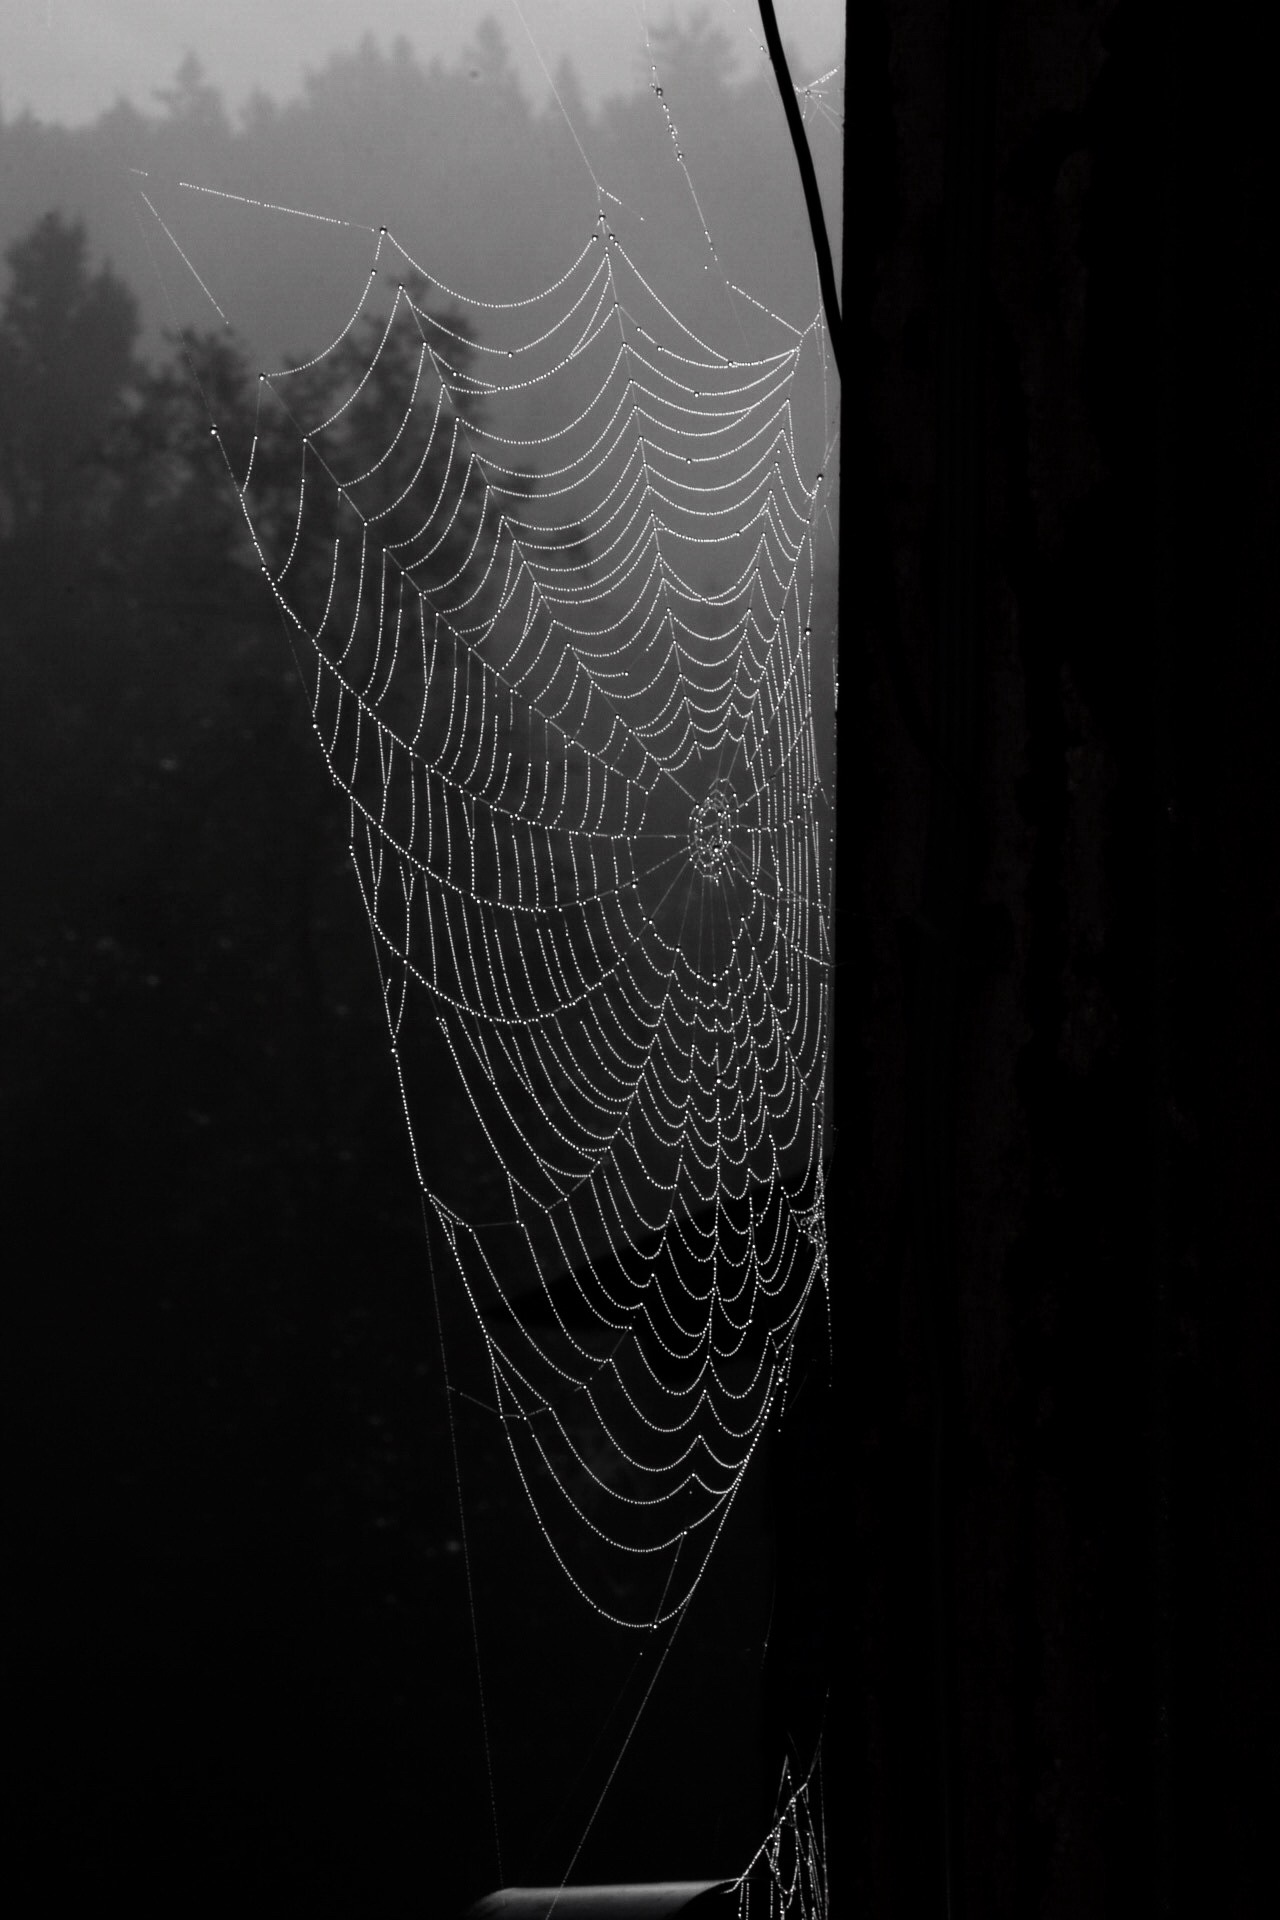 Morning Web by BeePhotographer